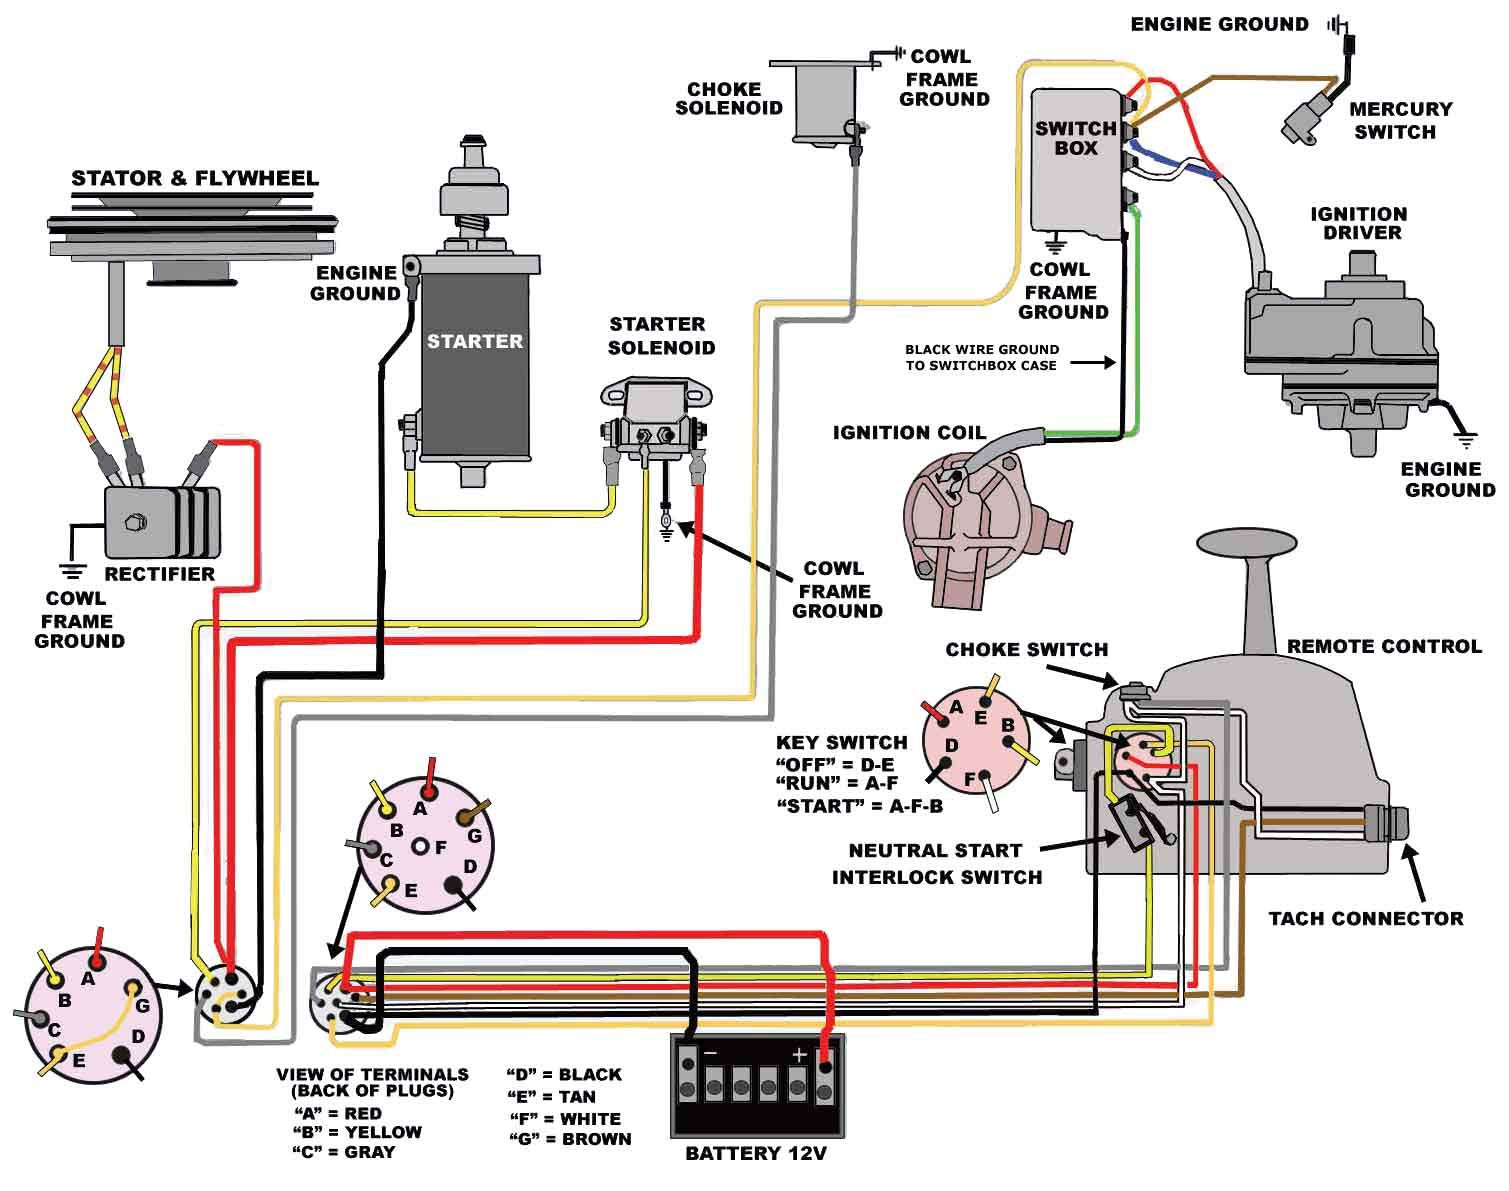 13cfb2d962bcd0c03103625817b7d51d mercury outboard wiring diagram diagram pinterest mercury mercury outboard wiring diagram schematic at mifinder.co